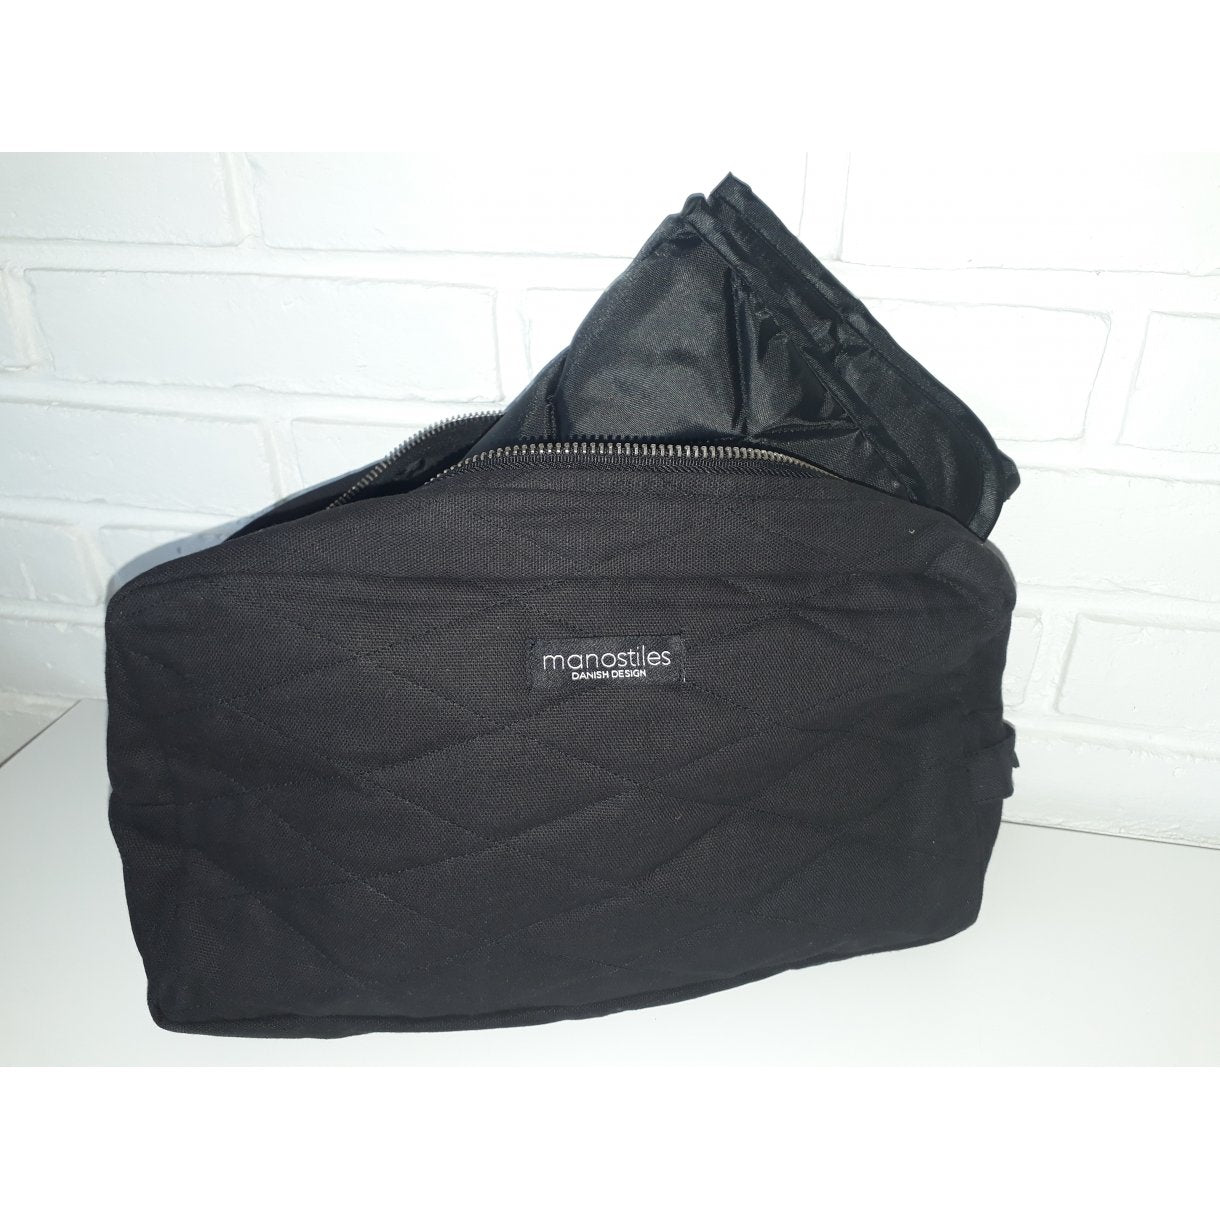 Manostiles - Puslesæt, Perfect Baby Bag - Black